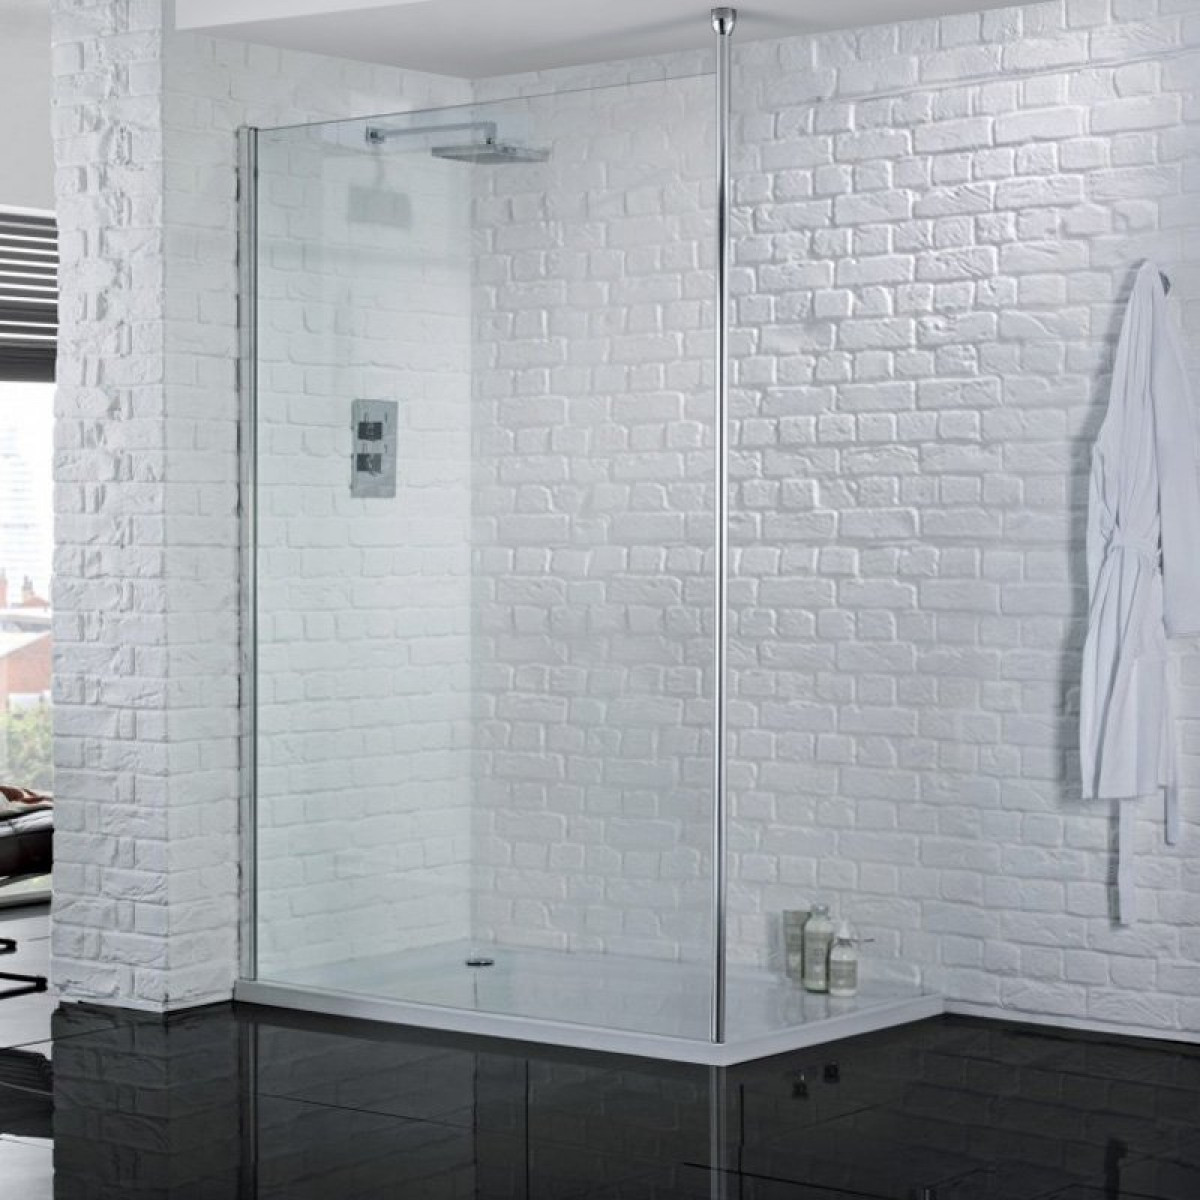 Aquadart Wetroom 8 1600mm Safety Glass Shower Panel Aq8249s